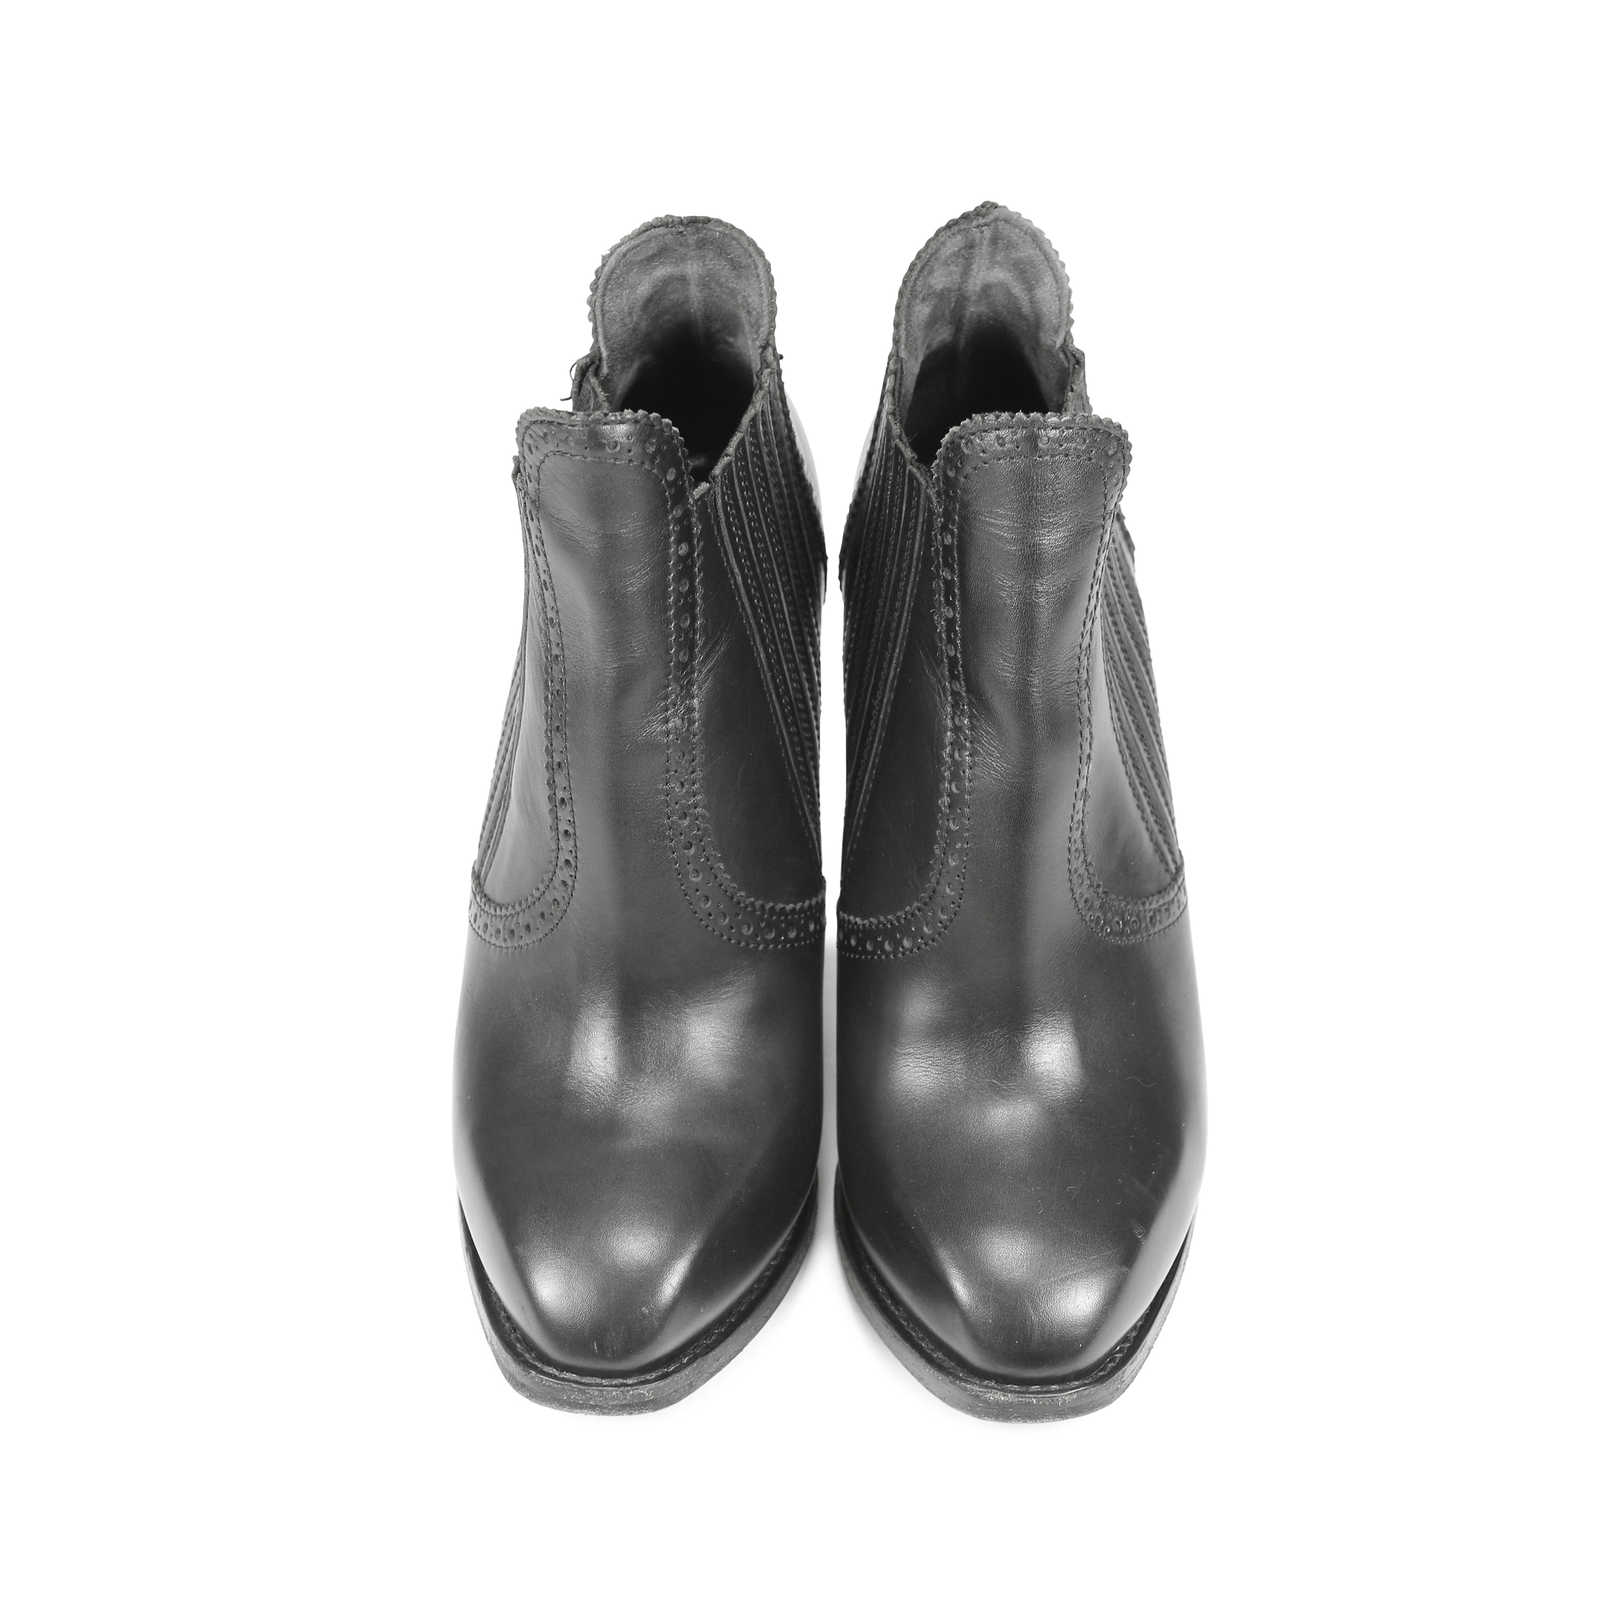 a6d705145cb Authentic Second Hand Alexander McQueen Brogue-Style Booties  (PSS-183-00029) ...